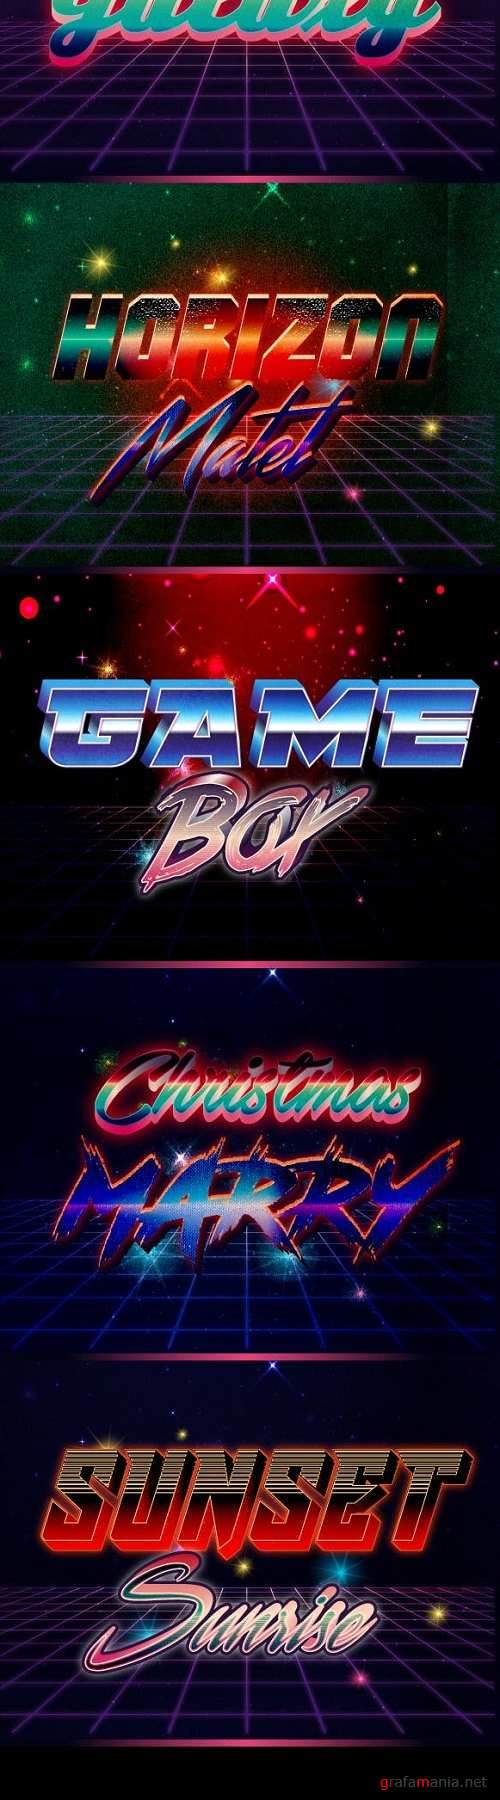 80's Text Effect V2 - 22985244